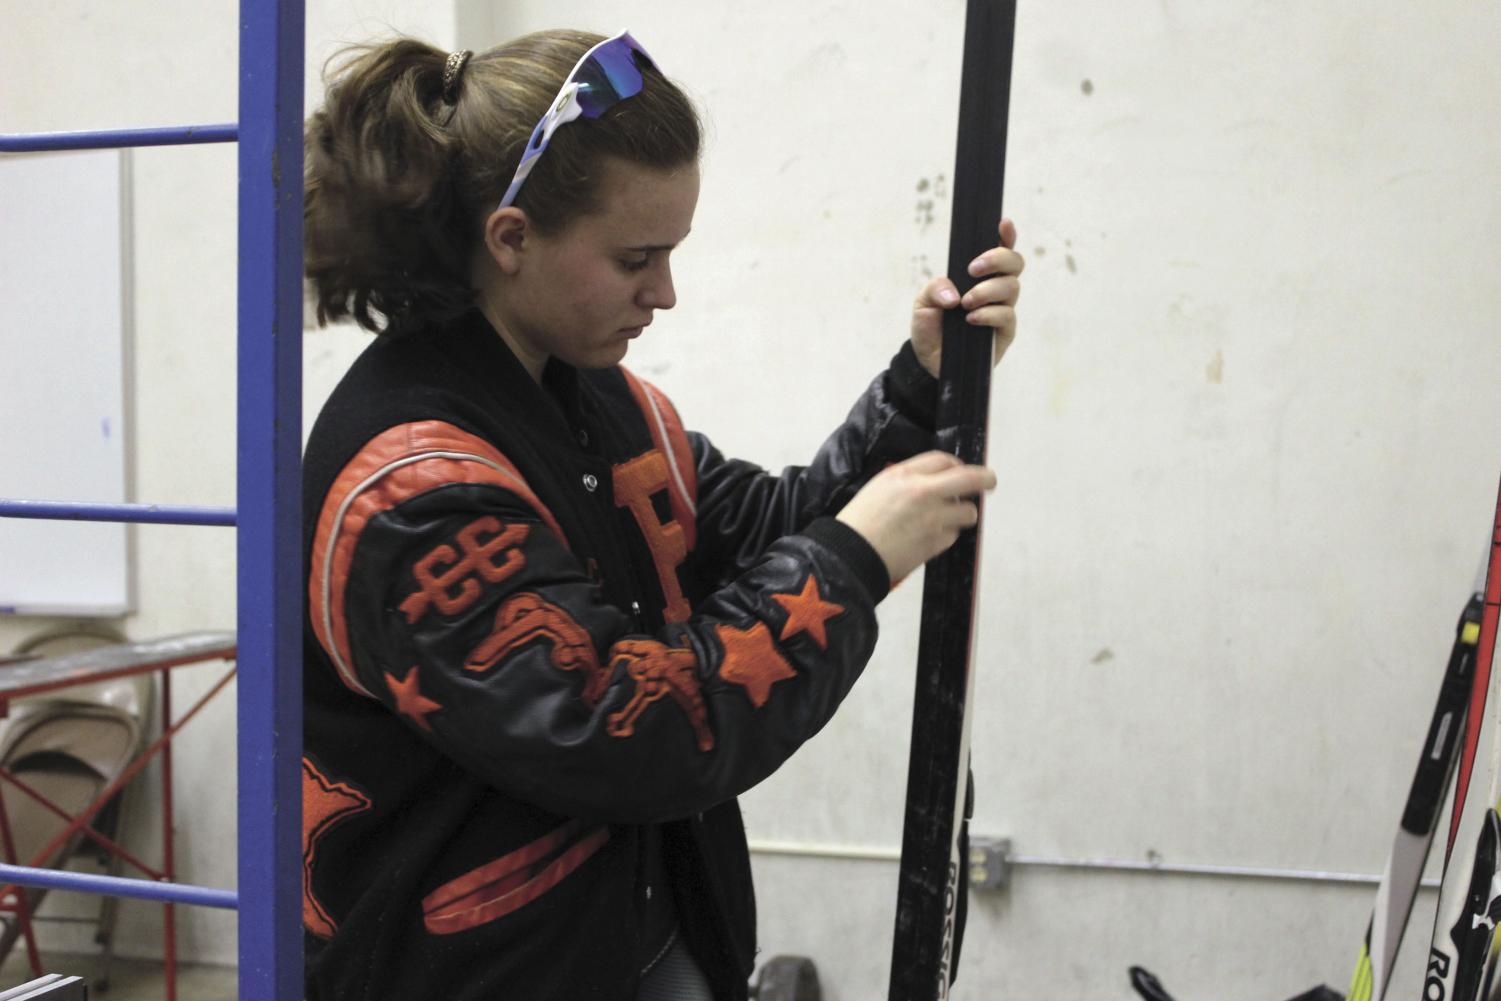 Senior Cece Schmelzle waxes her skis in preparation for her next qualifying meet. The race was on the weekend of Dec. 15-16.